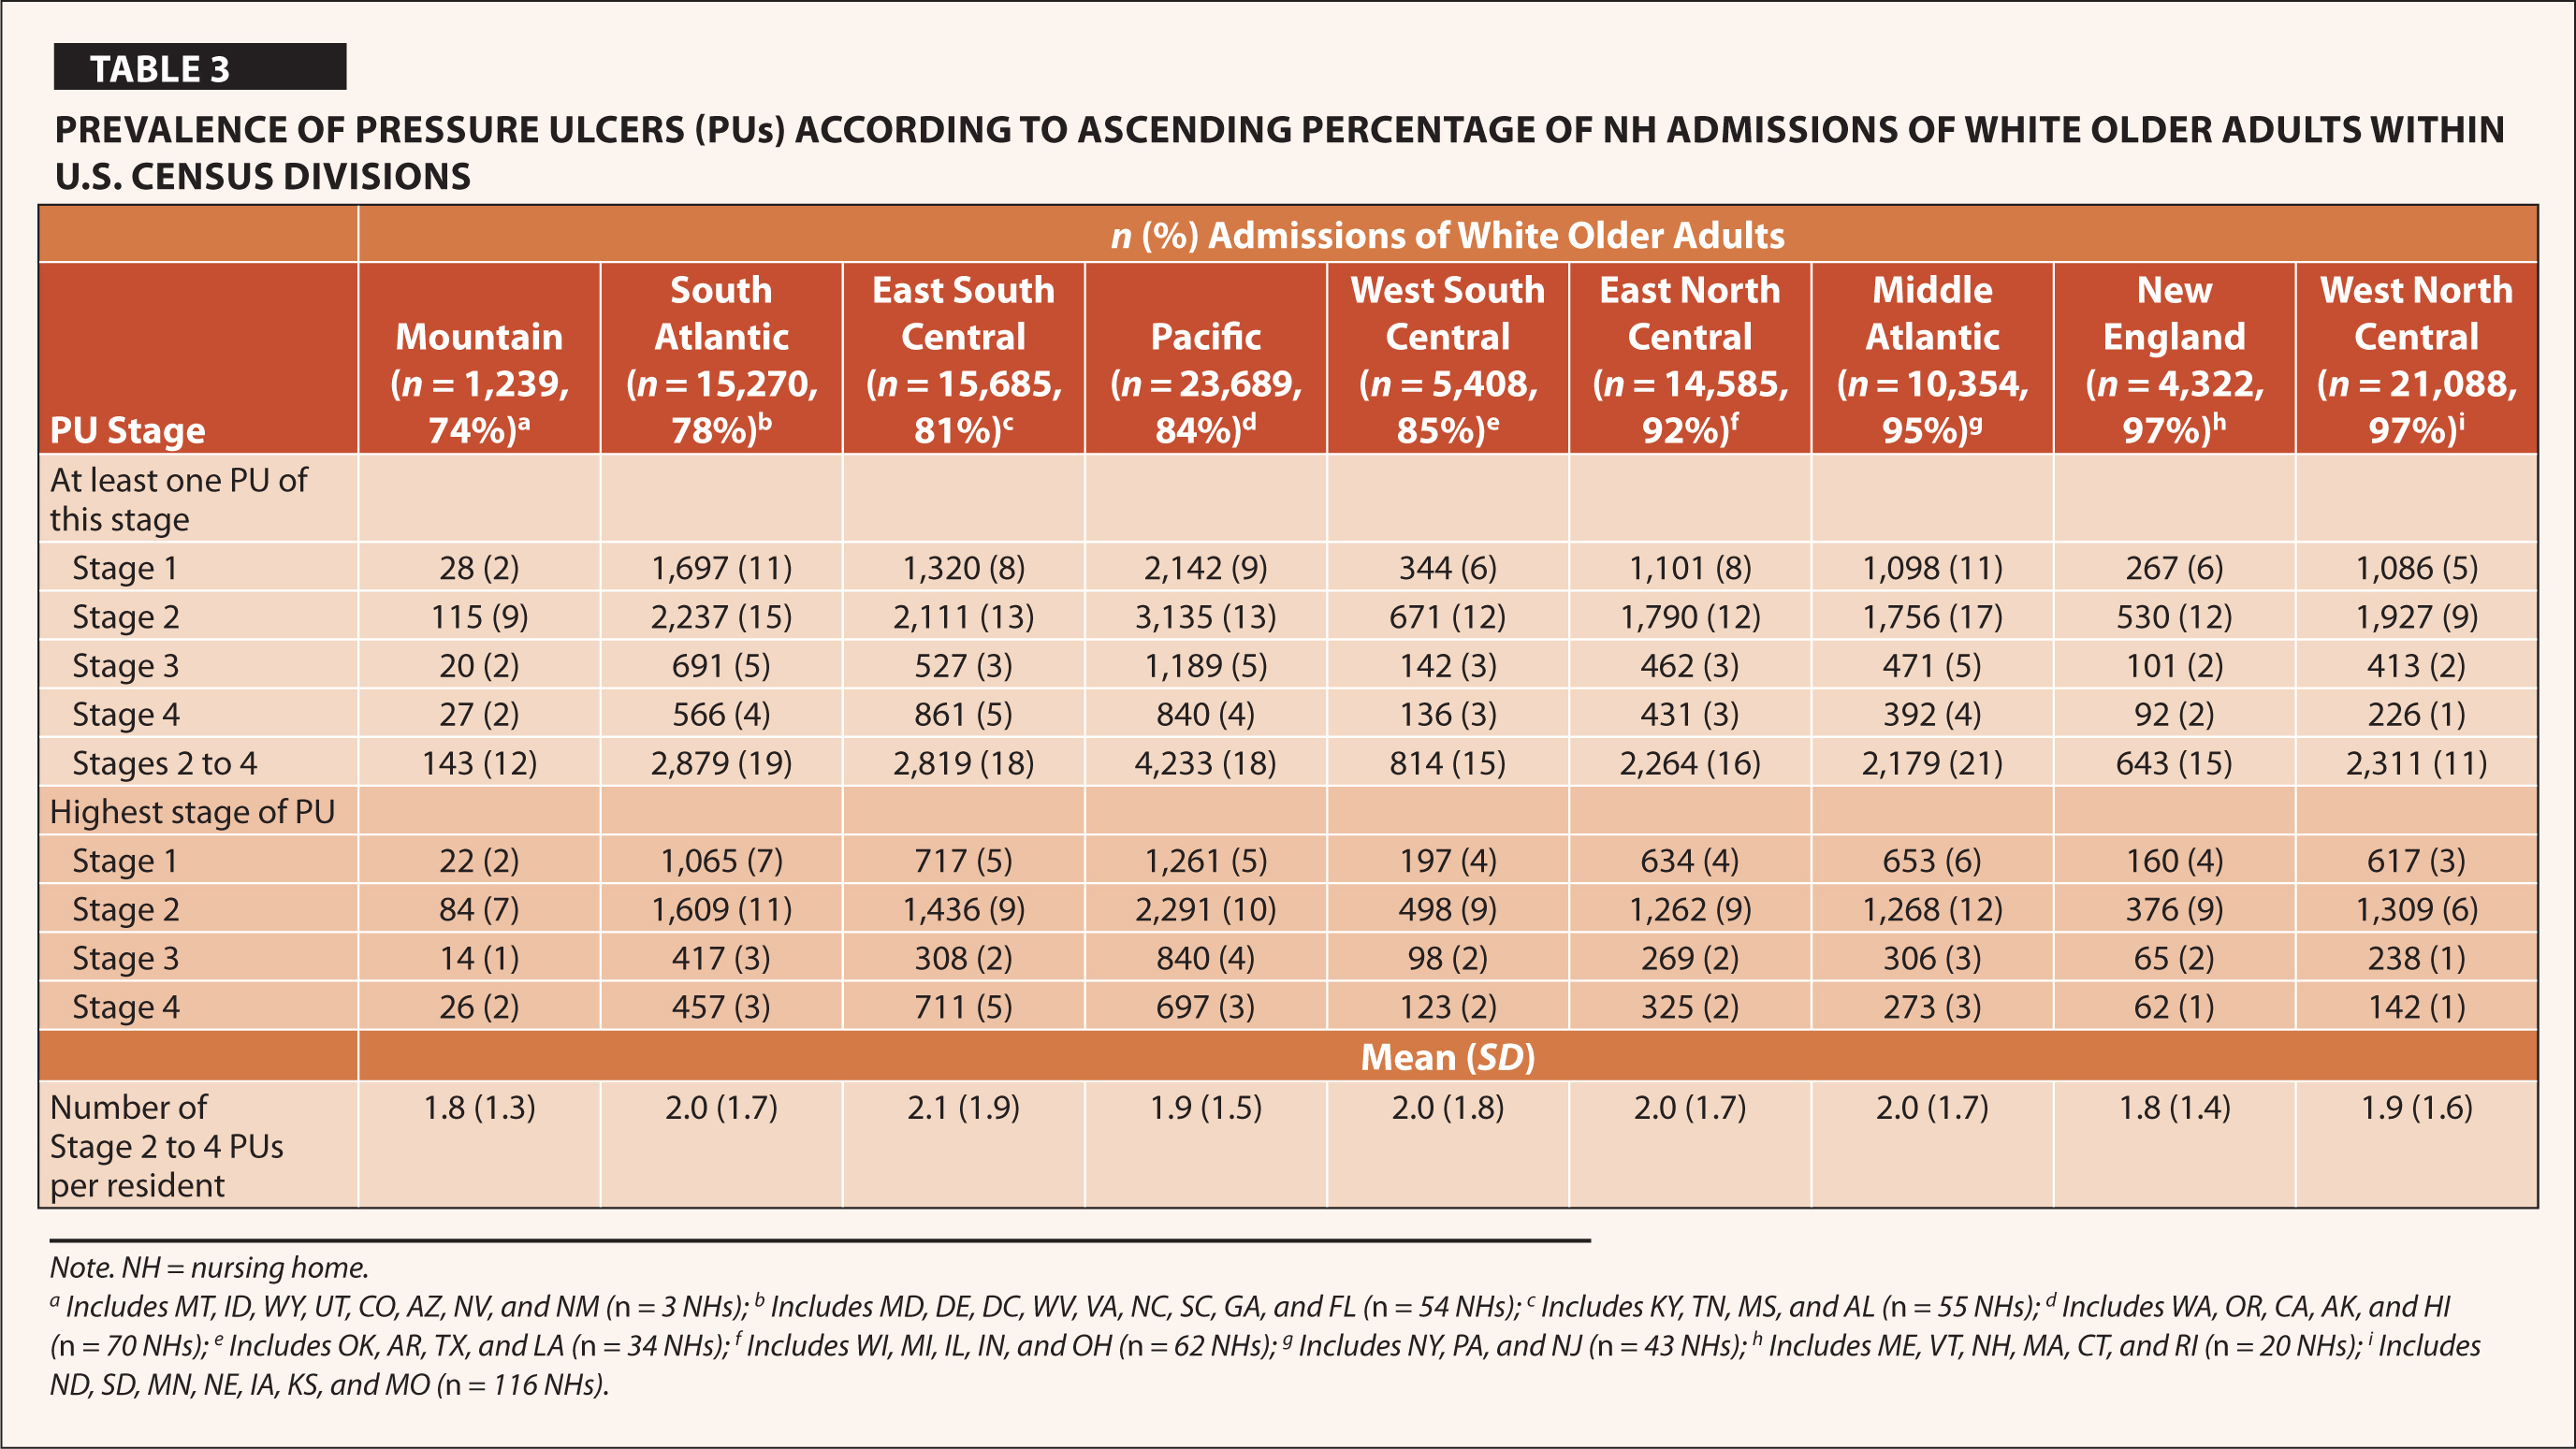 Prevalence of Pressure Ulcers (PUs) According to Ascending Percentage of NH Admissions of White Older Adults within U.S. Census Divisions